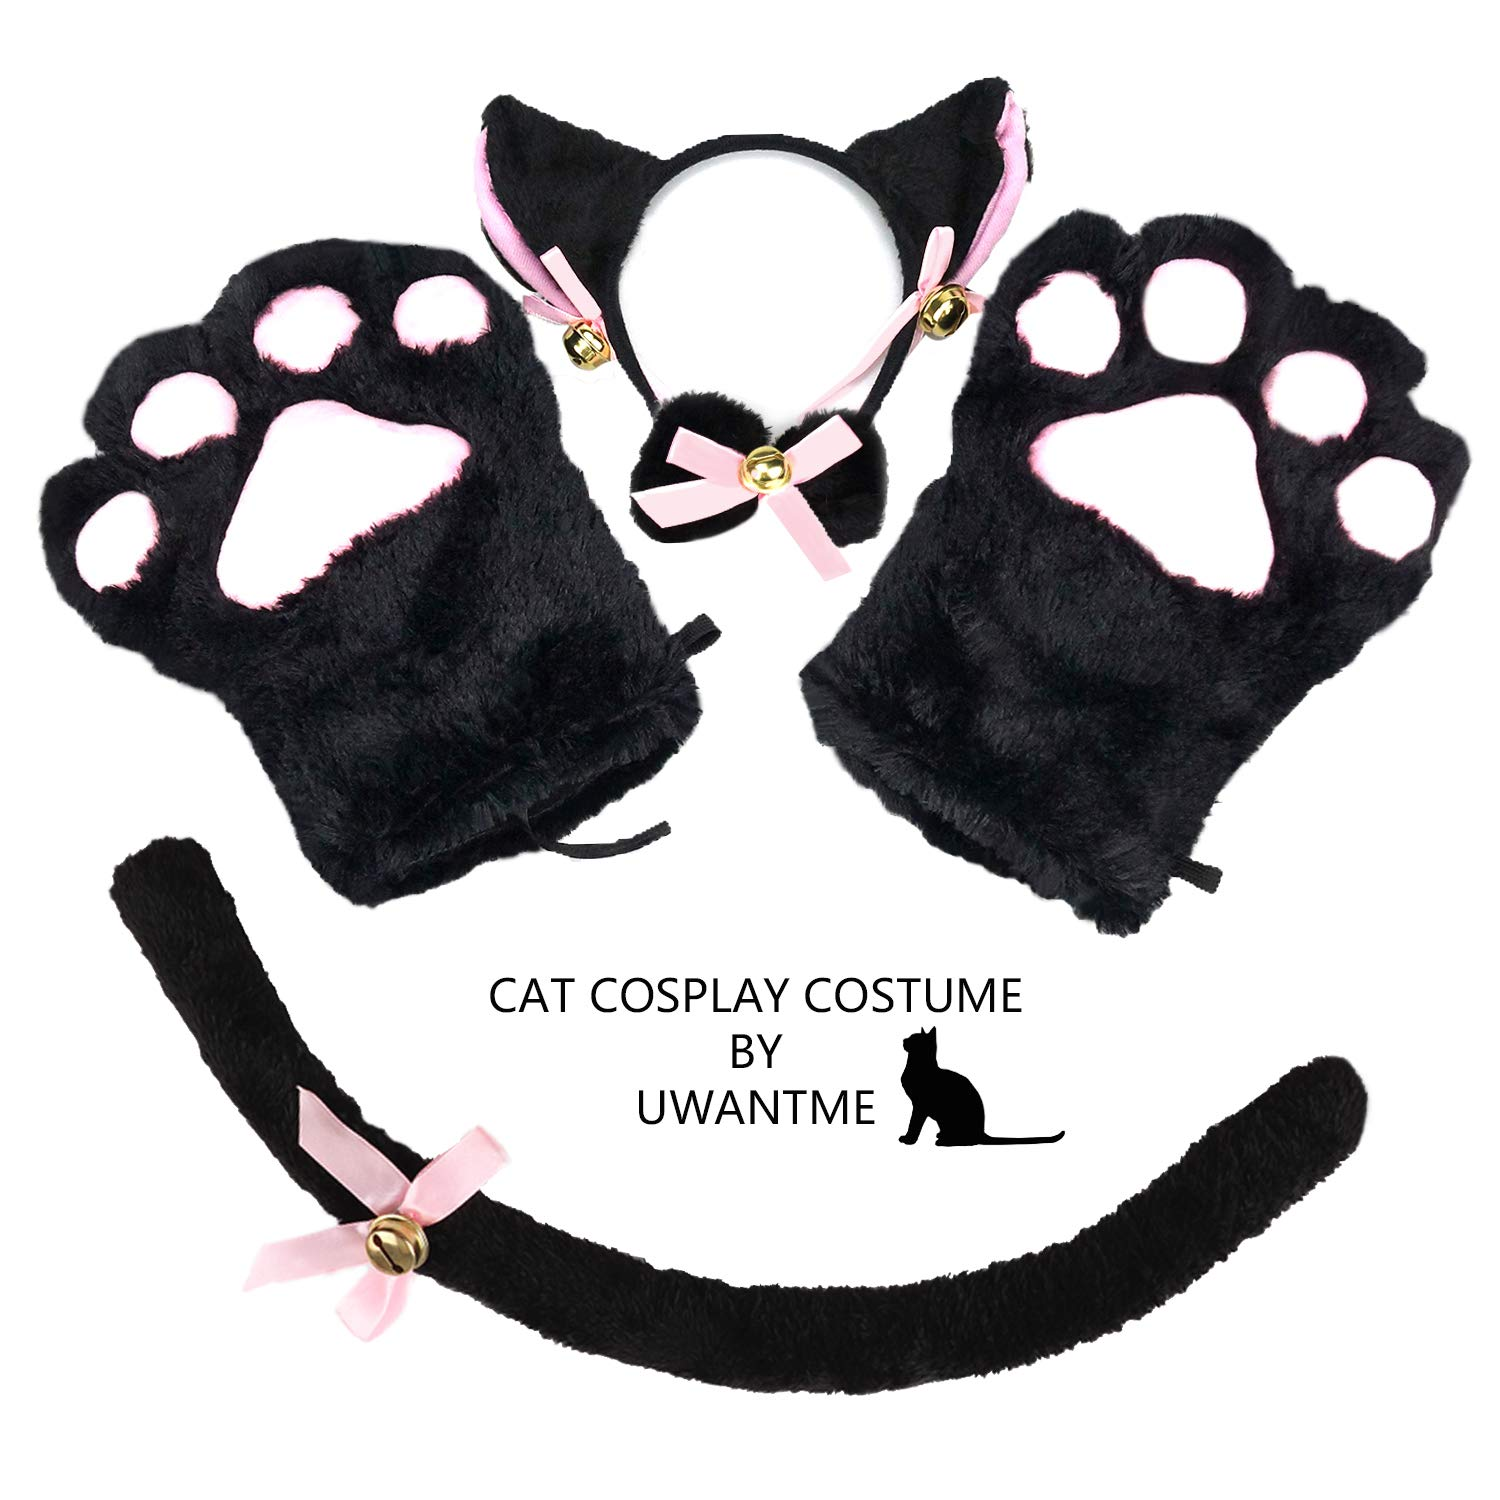 e1fd60702597b UWANTME Cat Cosplay Costume Kitten Tail Ears Collar Paws Gloves Anime  Lolita Gothic Set